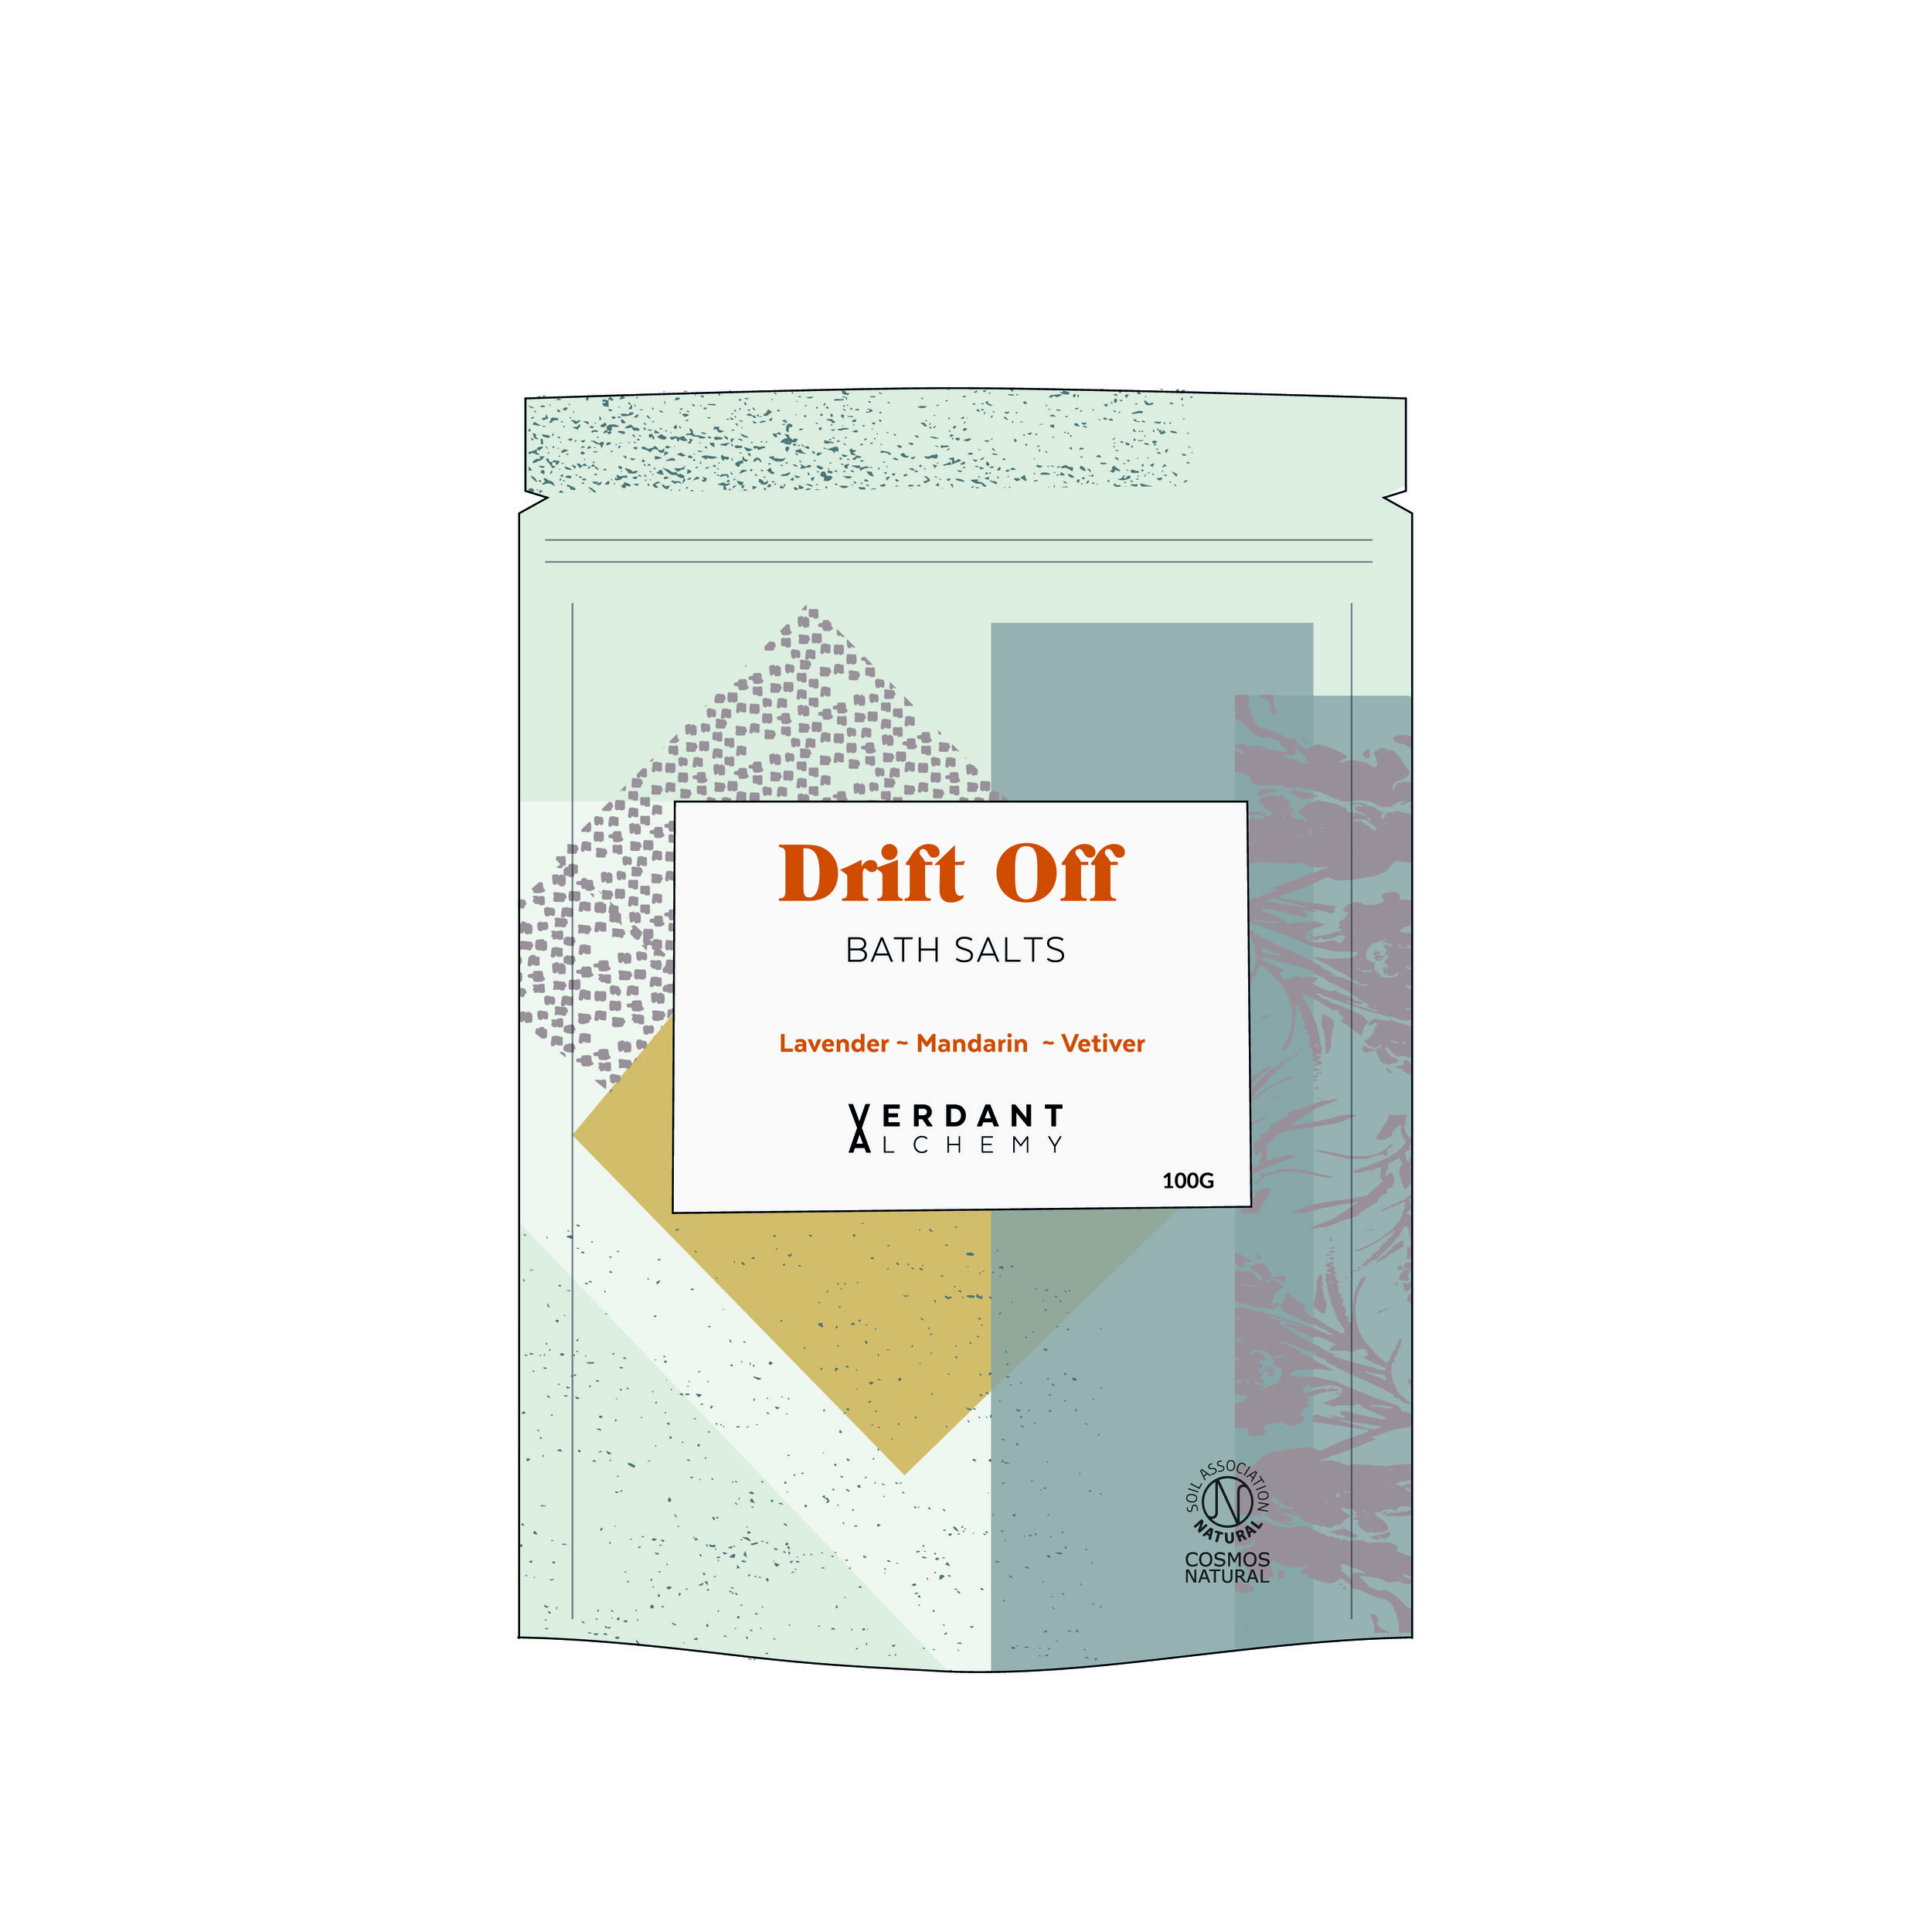 drift off bath salts -01-01.jpg